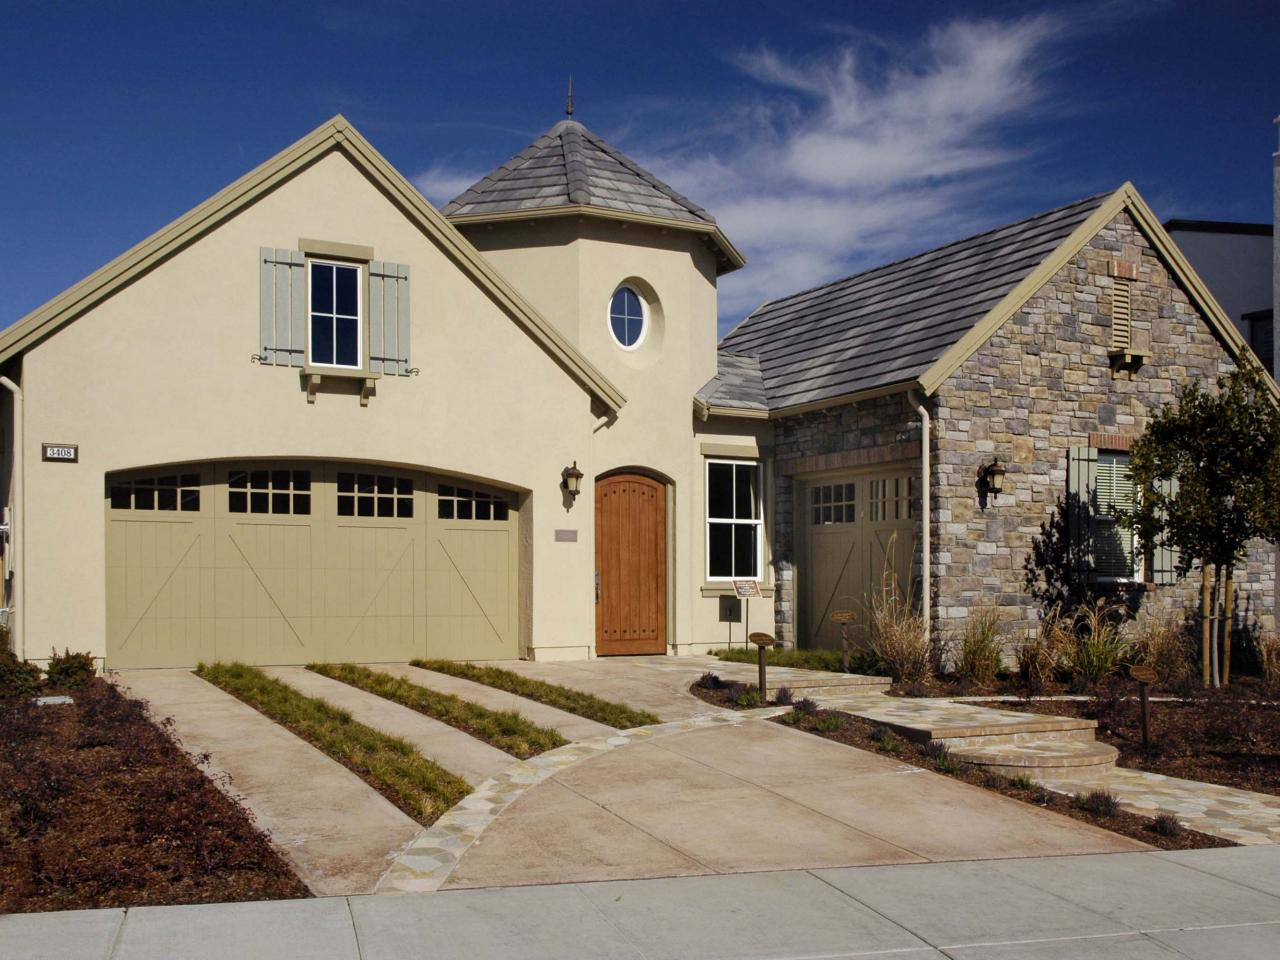 Photos hgtv for French country exterior colors